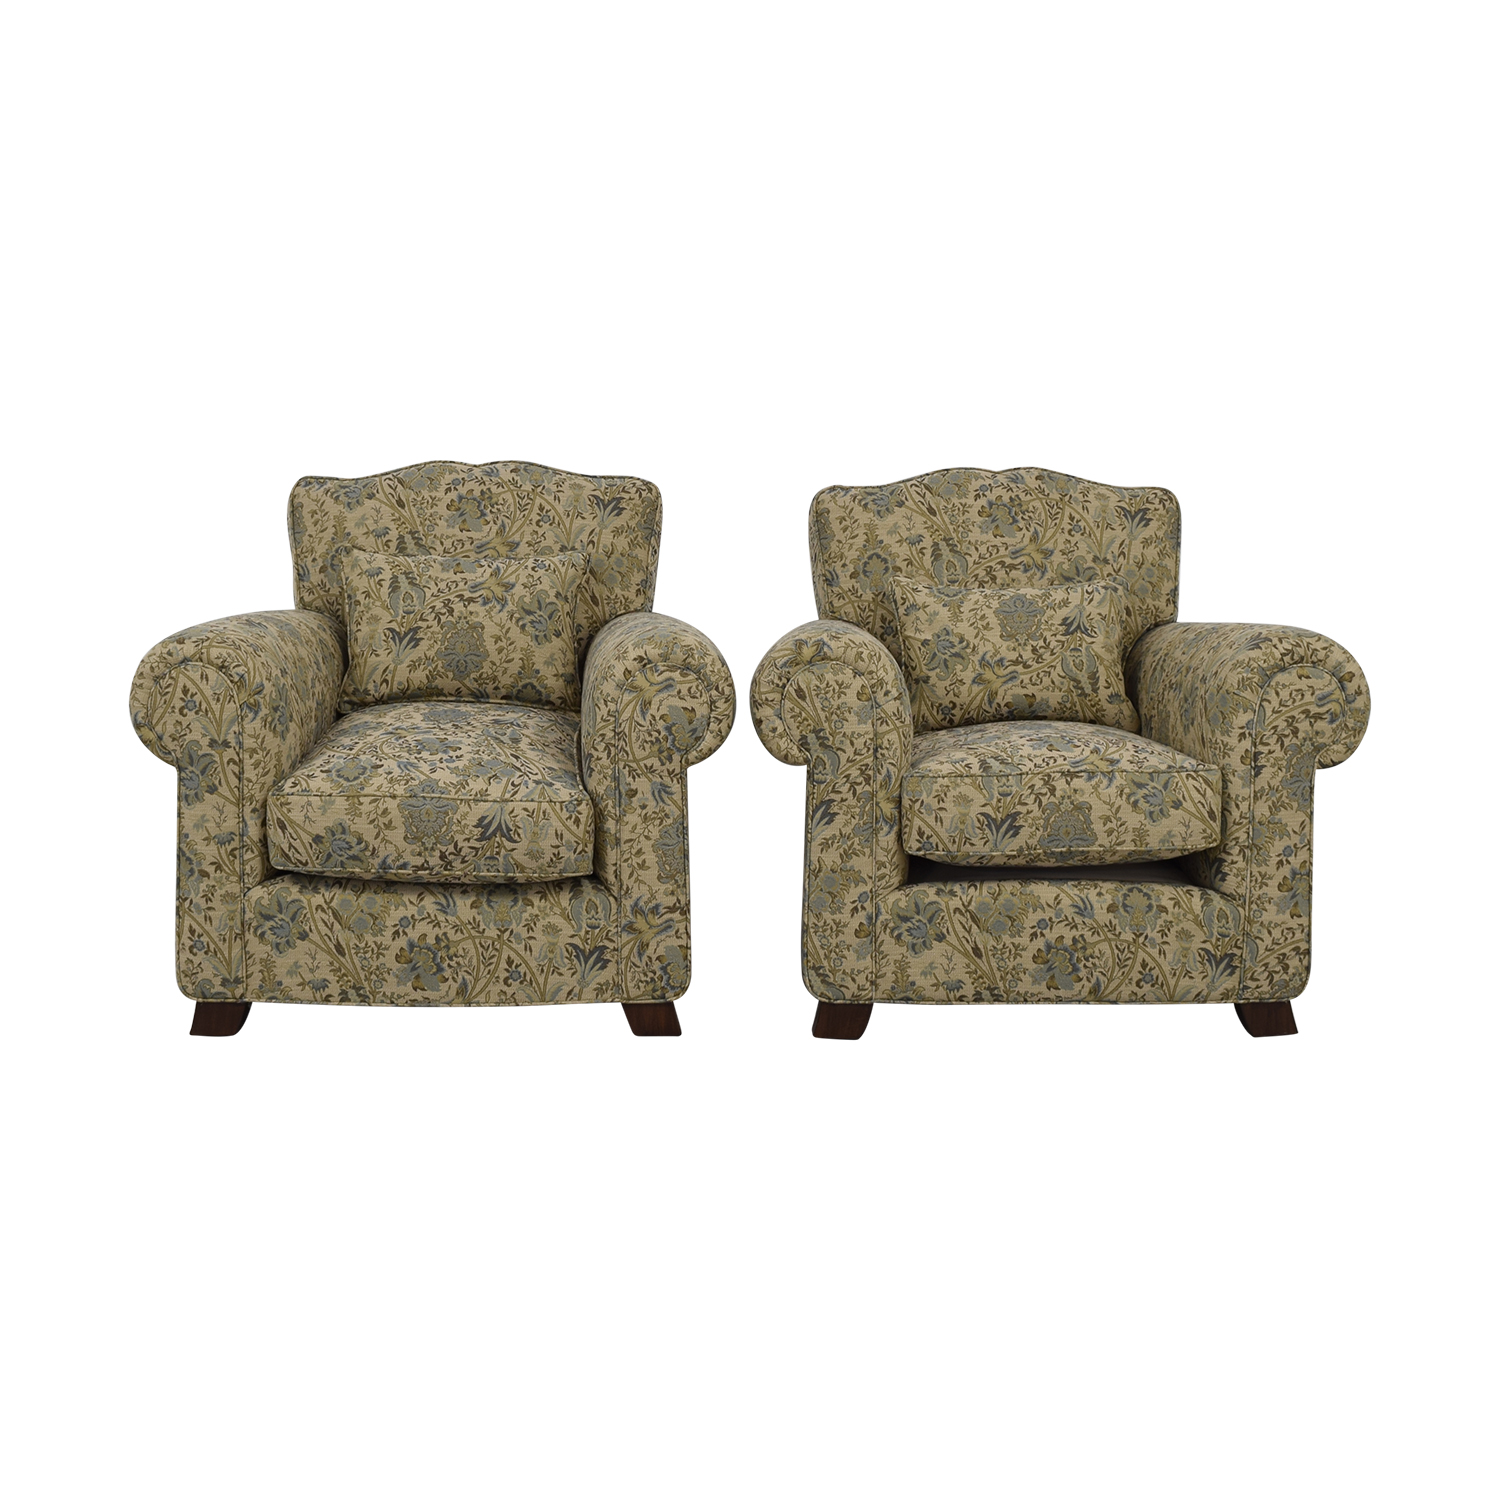 Furniture Masters Furniture Masters Floral Traditional Chairs Sofas